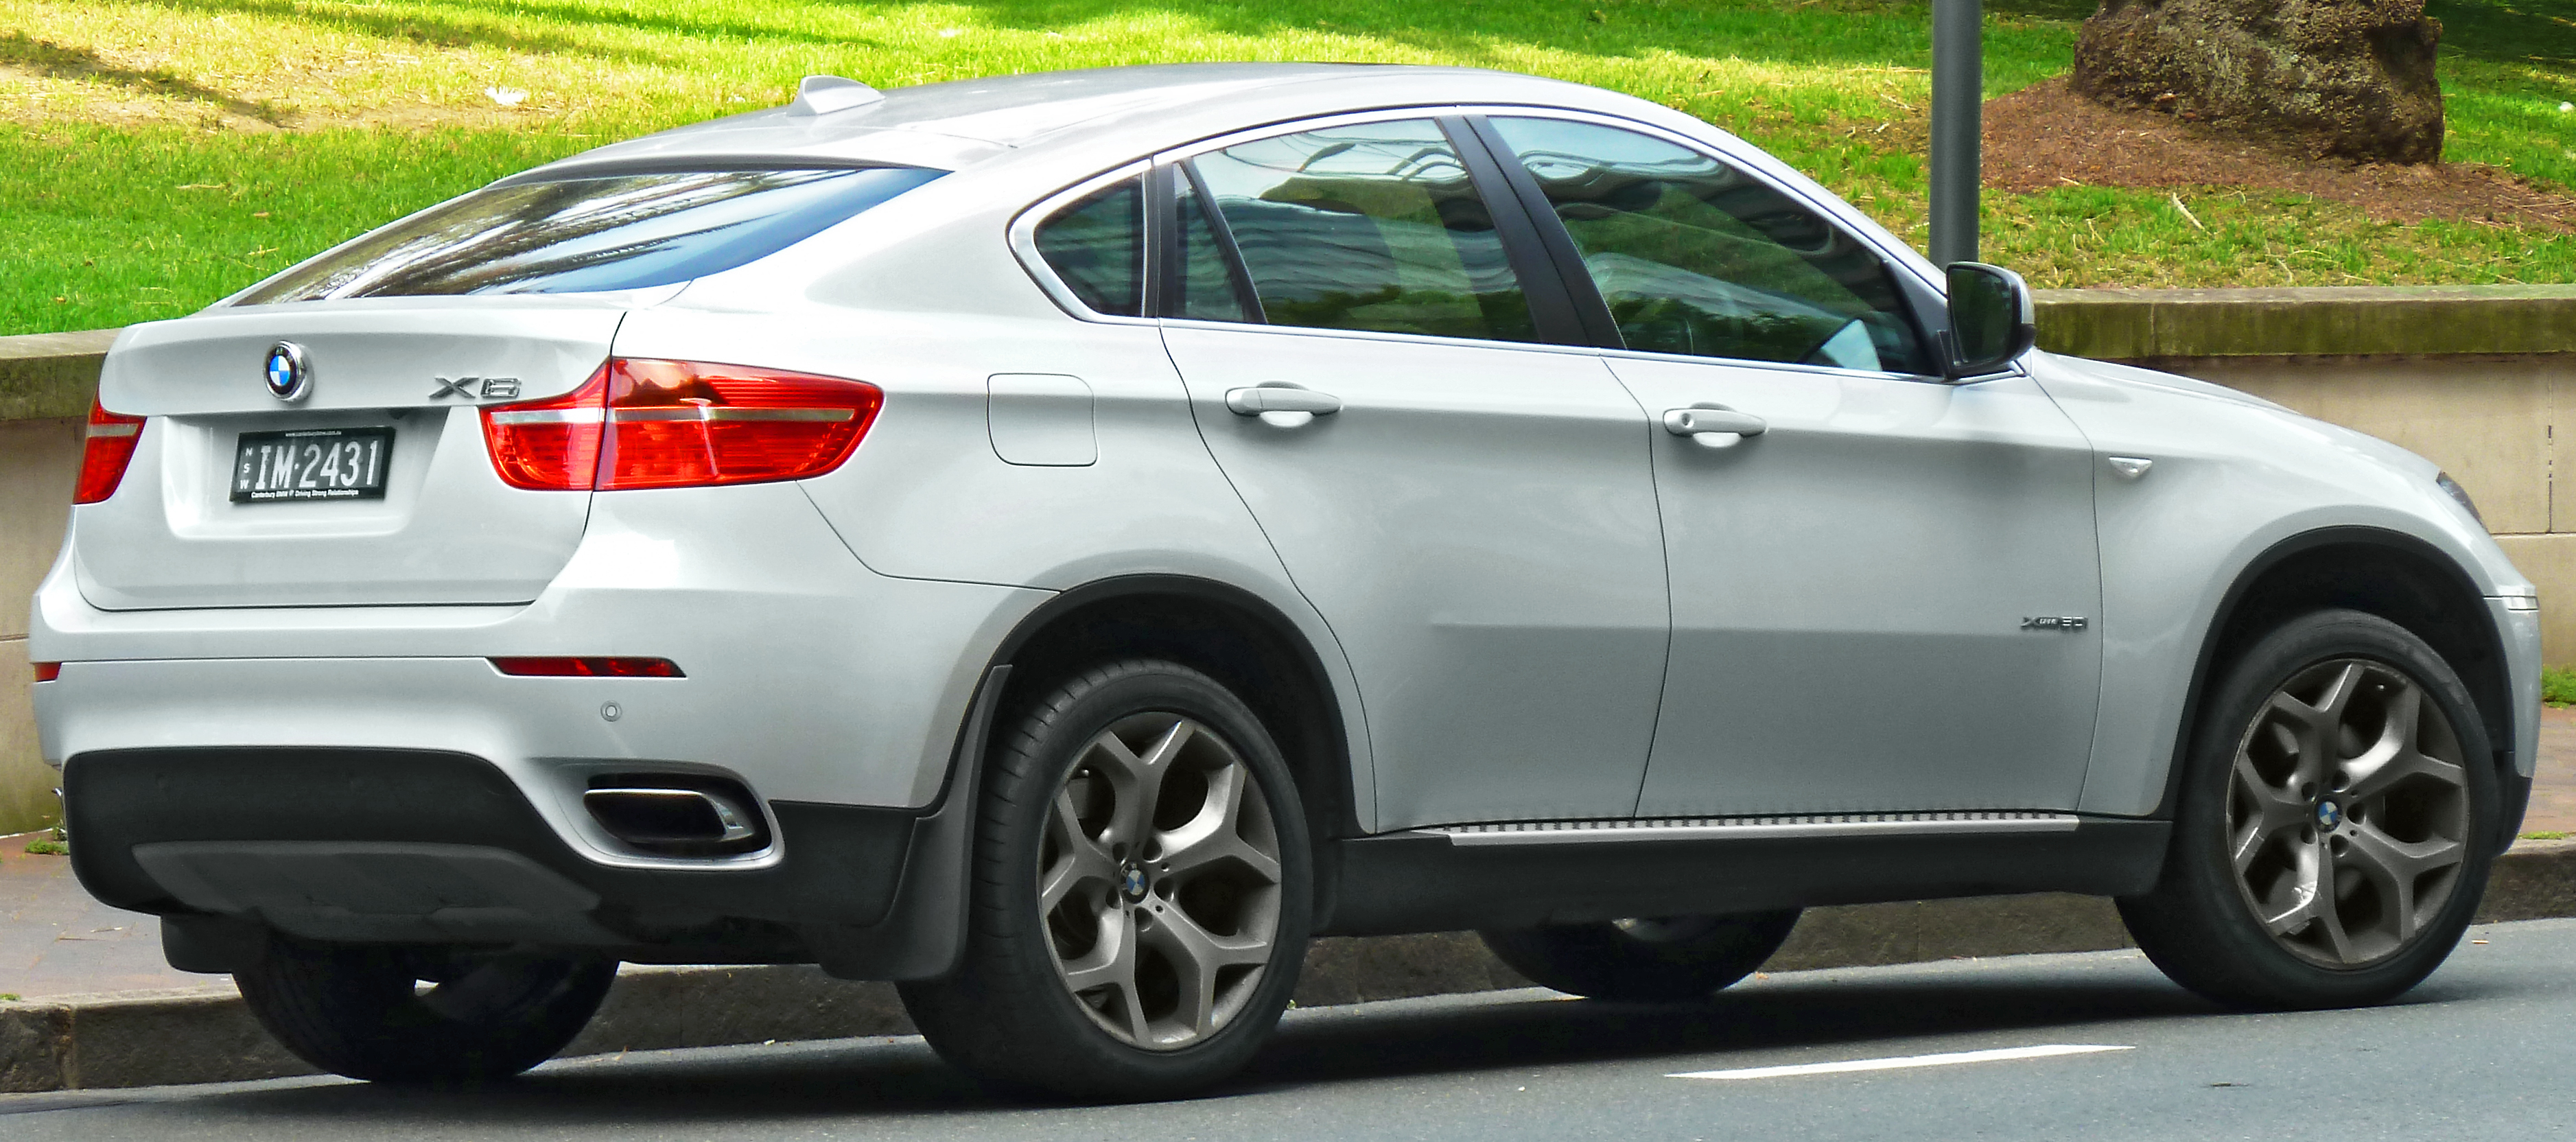 2011 bmw x6 pictures information and specs auto. Black Bedroom Furniture Sets. Home Design Ideas